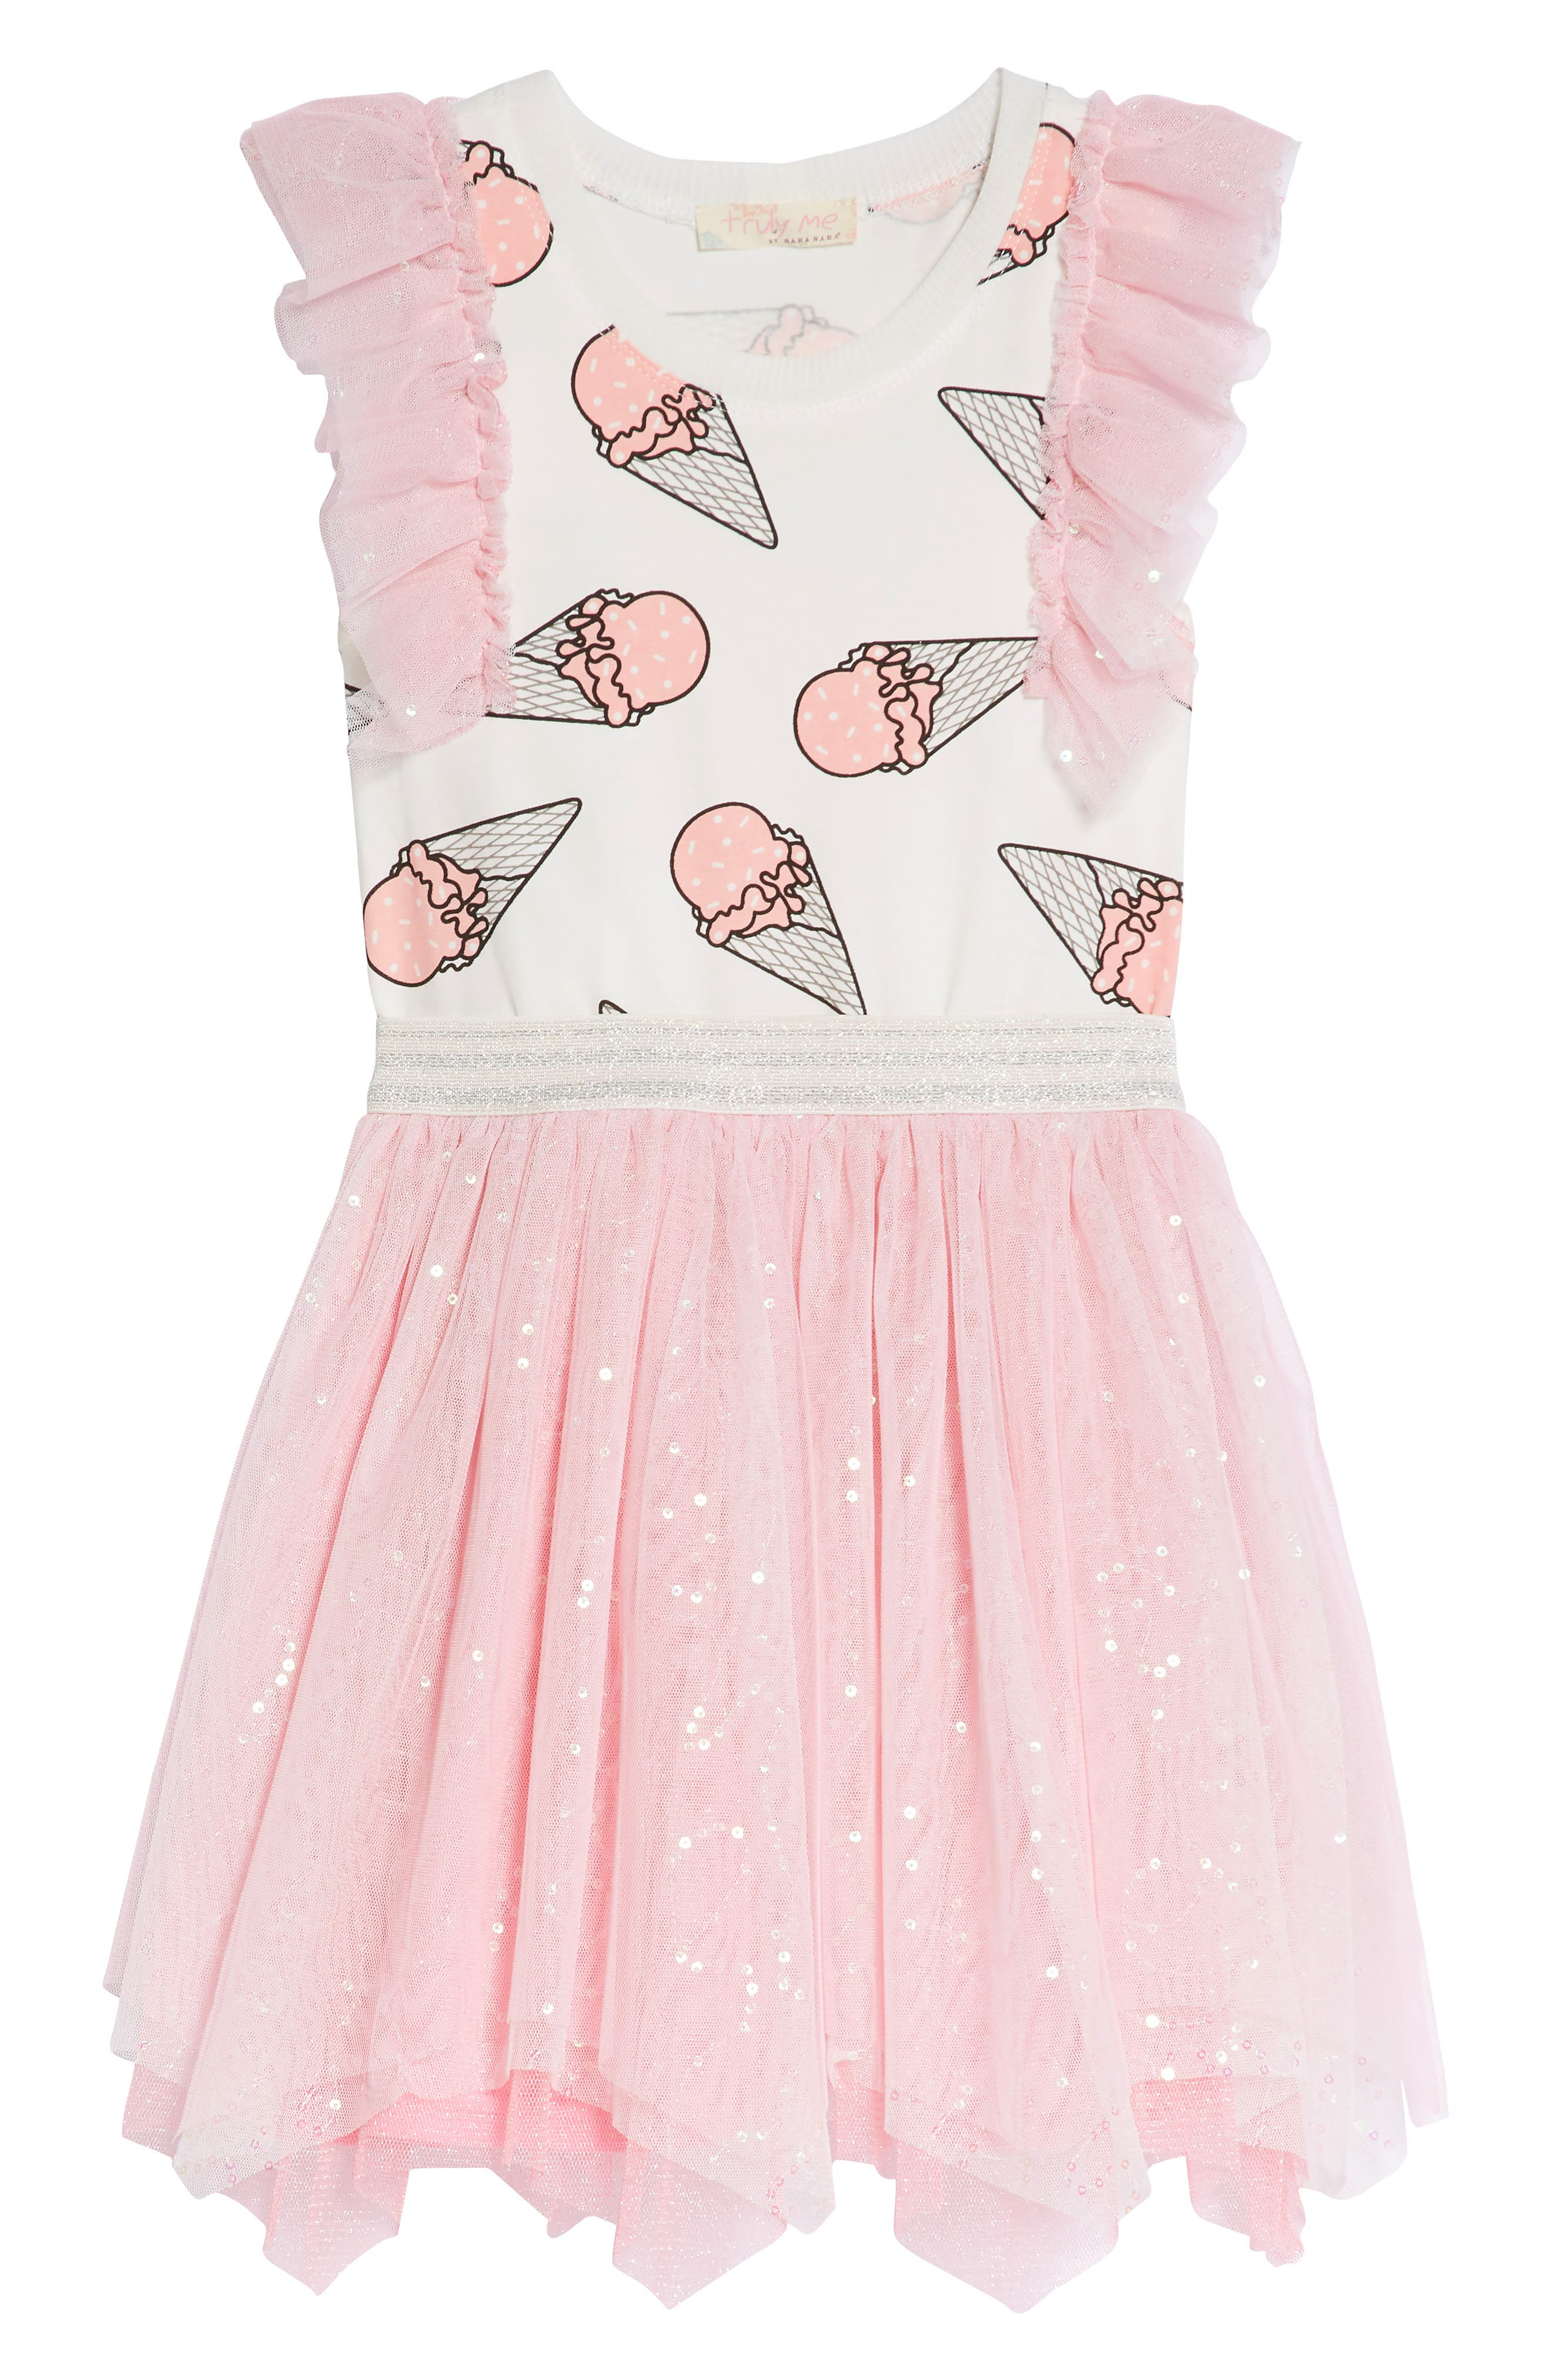 Alternate Image 1 Selected - Truly Me Ice Cream Print Dress (Toddler Girls & Little Girls)